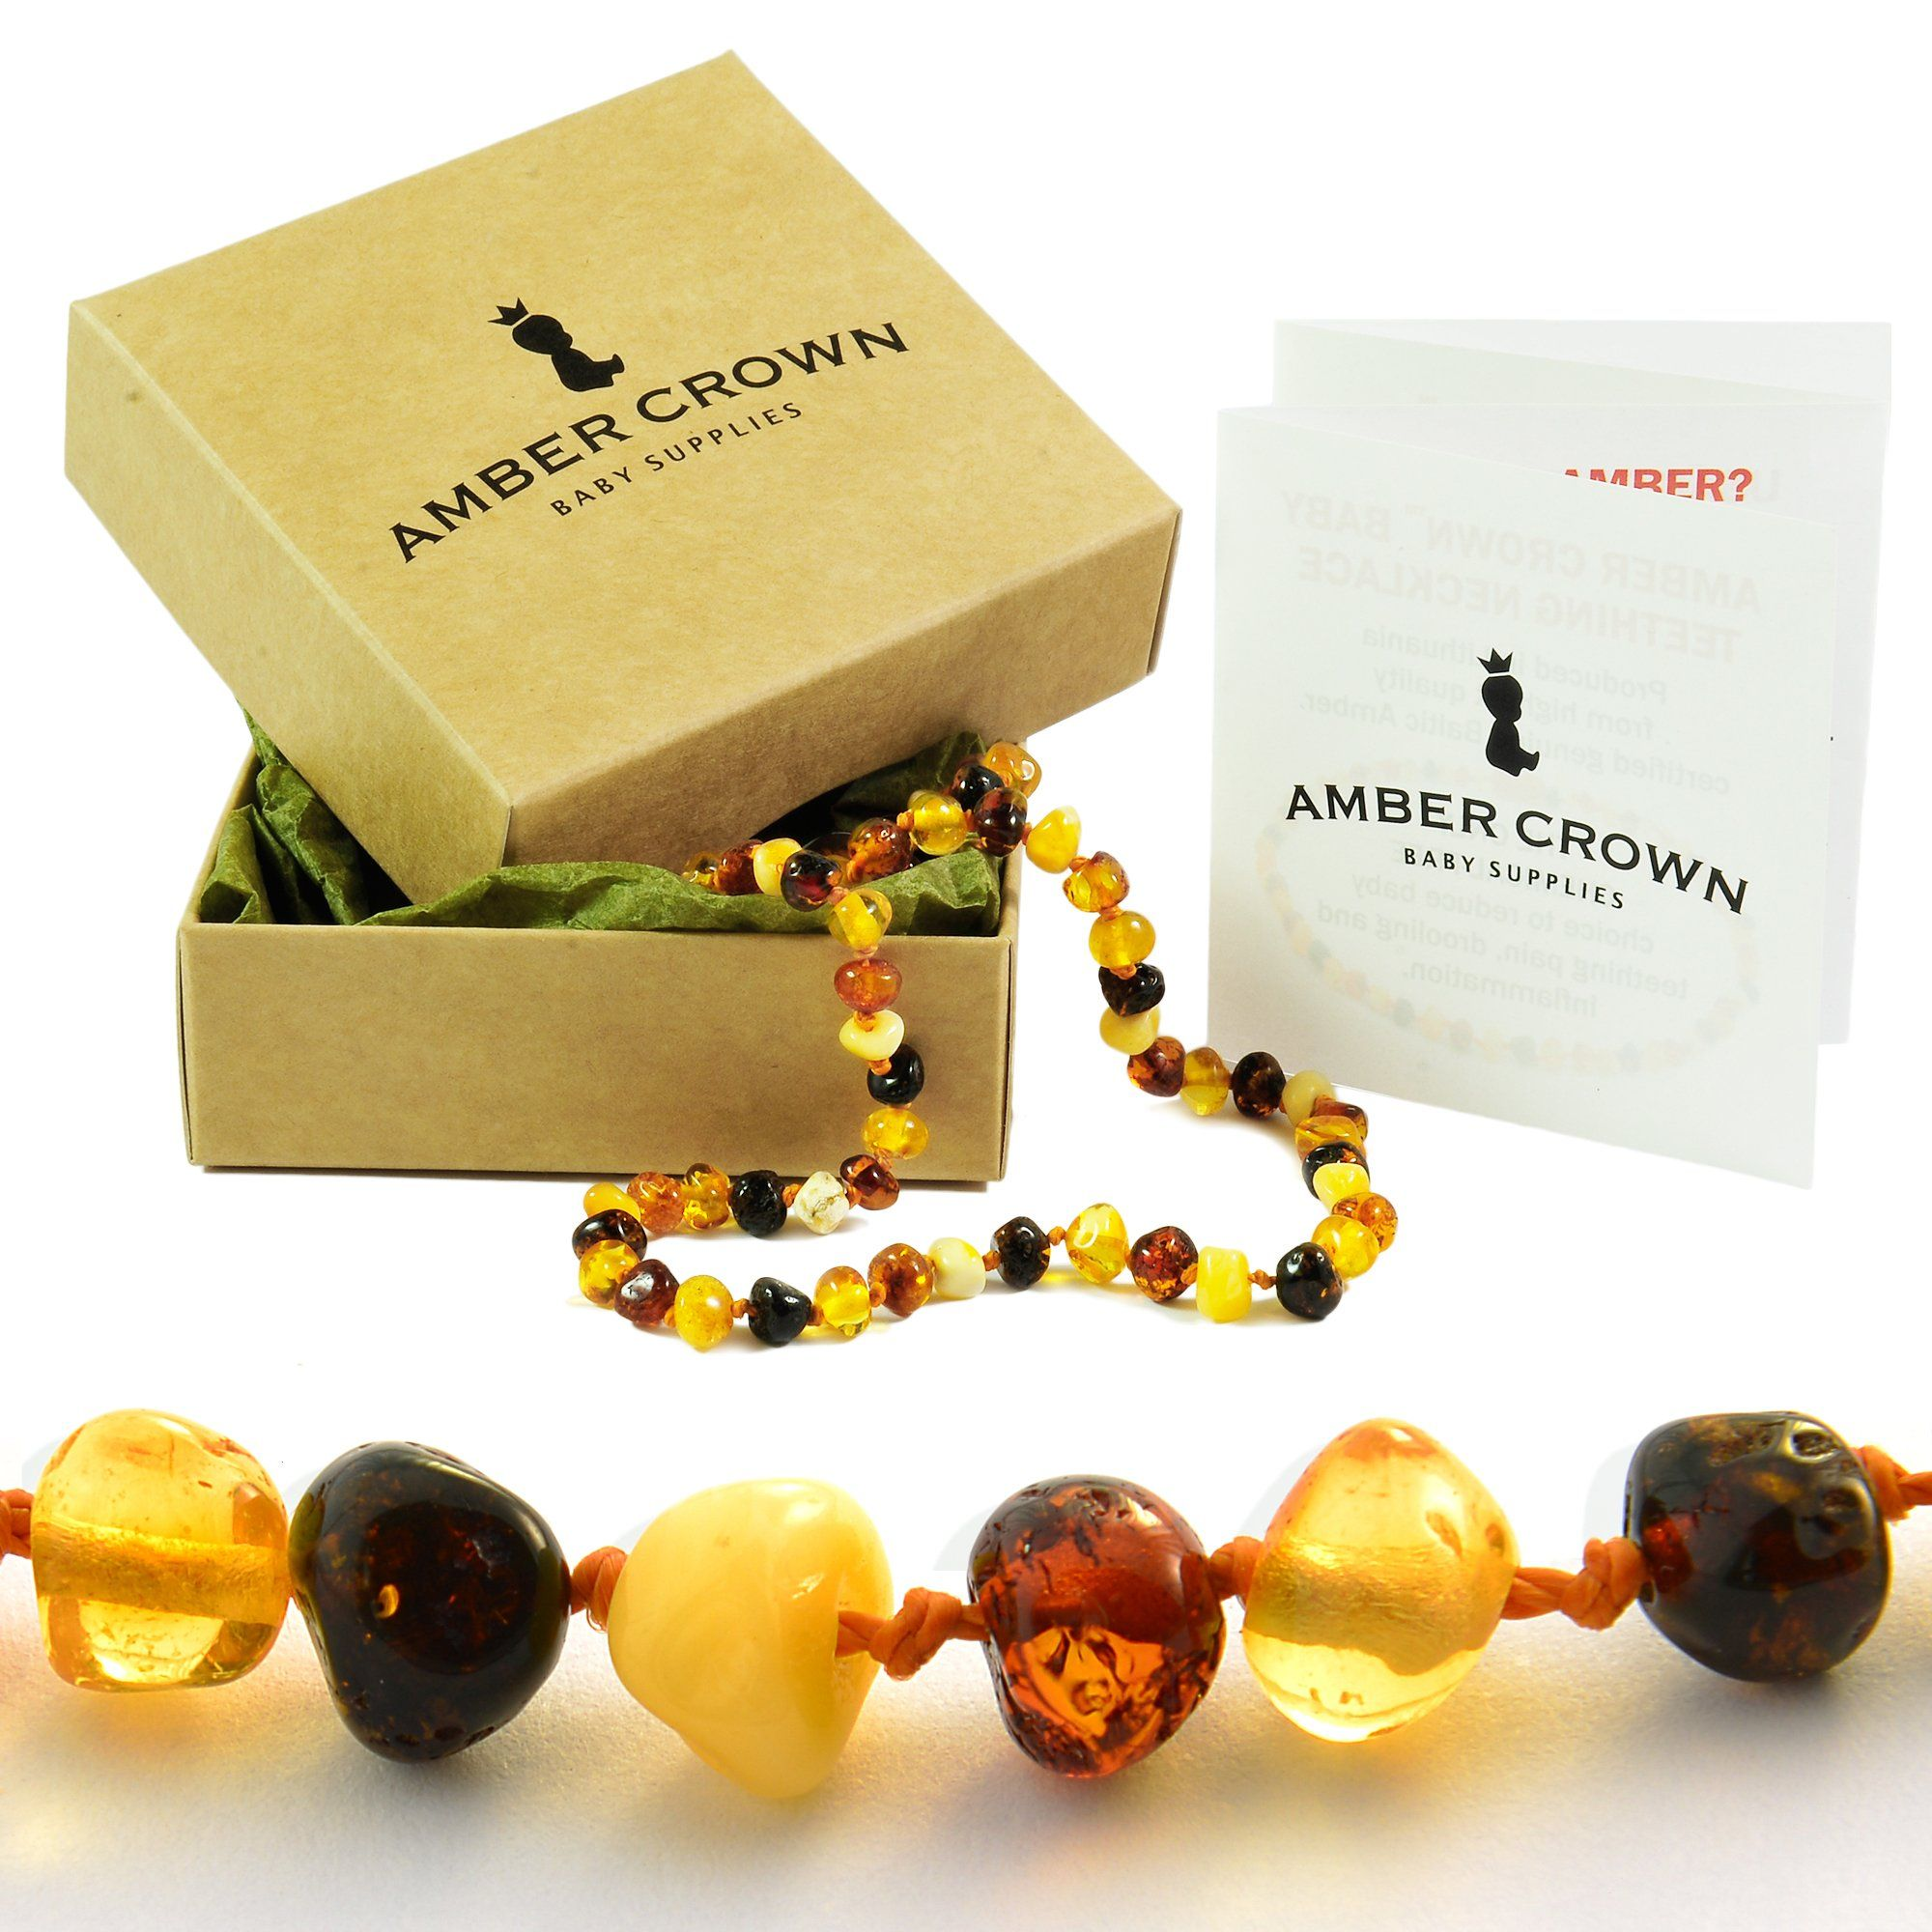 <3 www.ambercrown.com <3 #Multicolour #Amber #Teething #Necklace for #Babies - #Perfect #Baby #Shower #Gift!